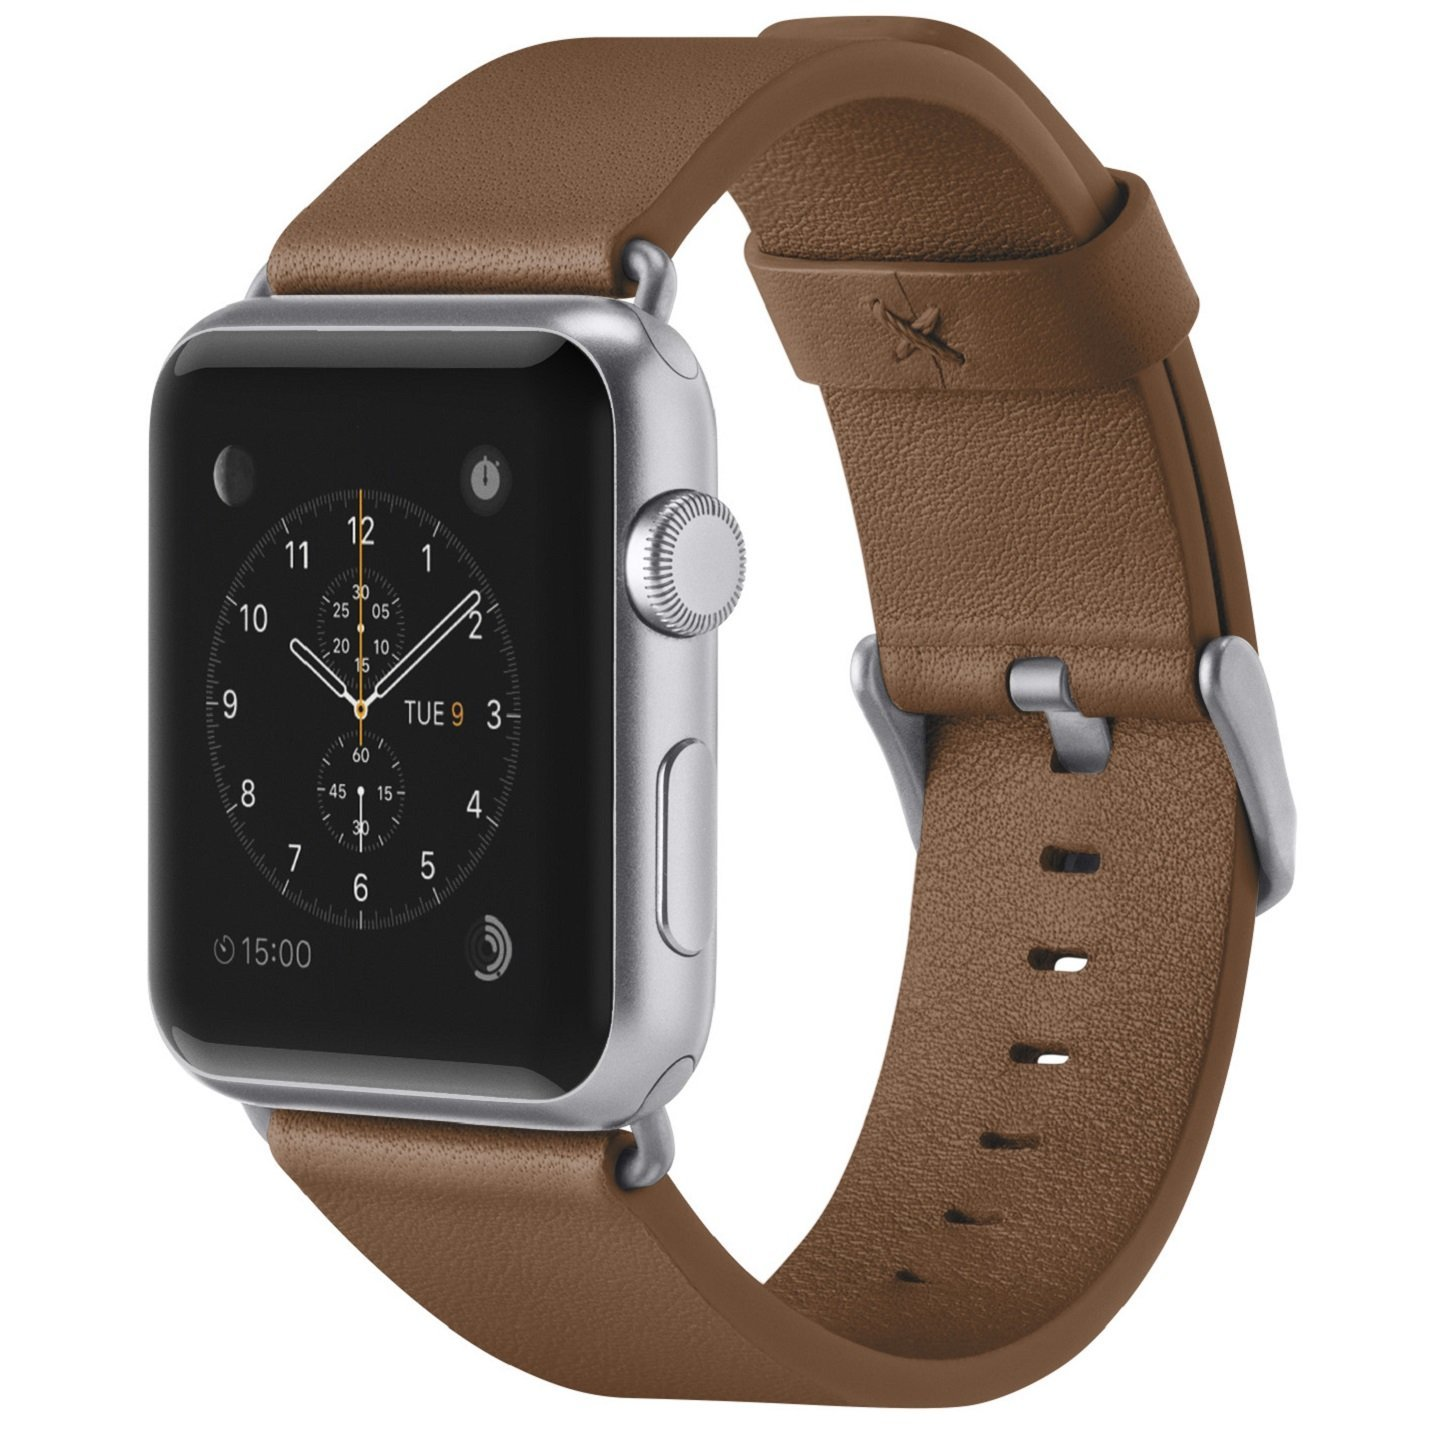 Belkin F8W730BTC00 correa apple smartwatch marrón